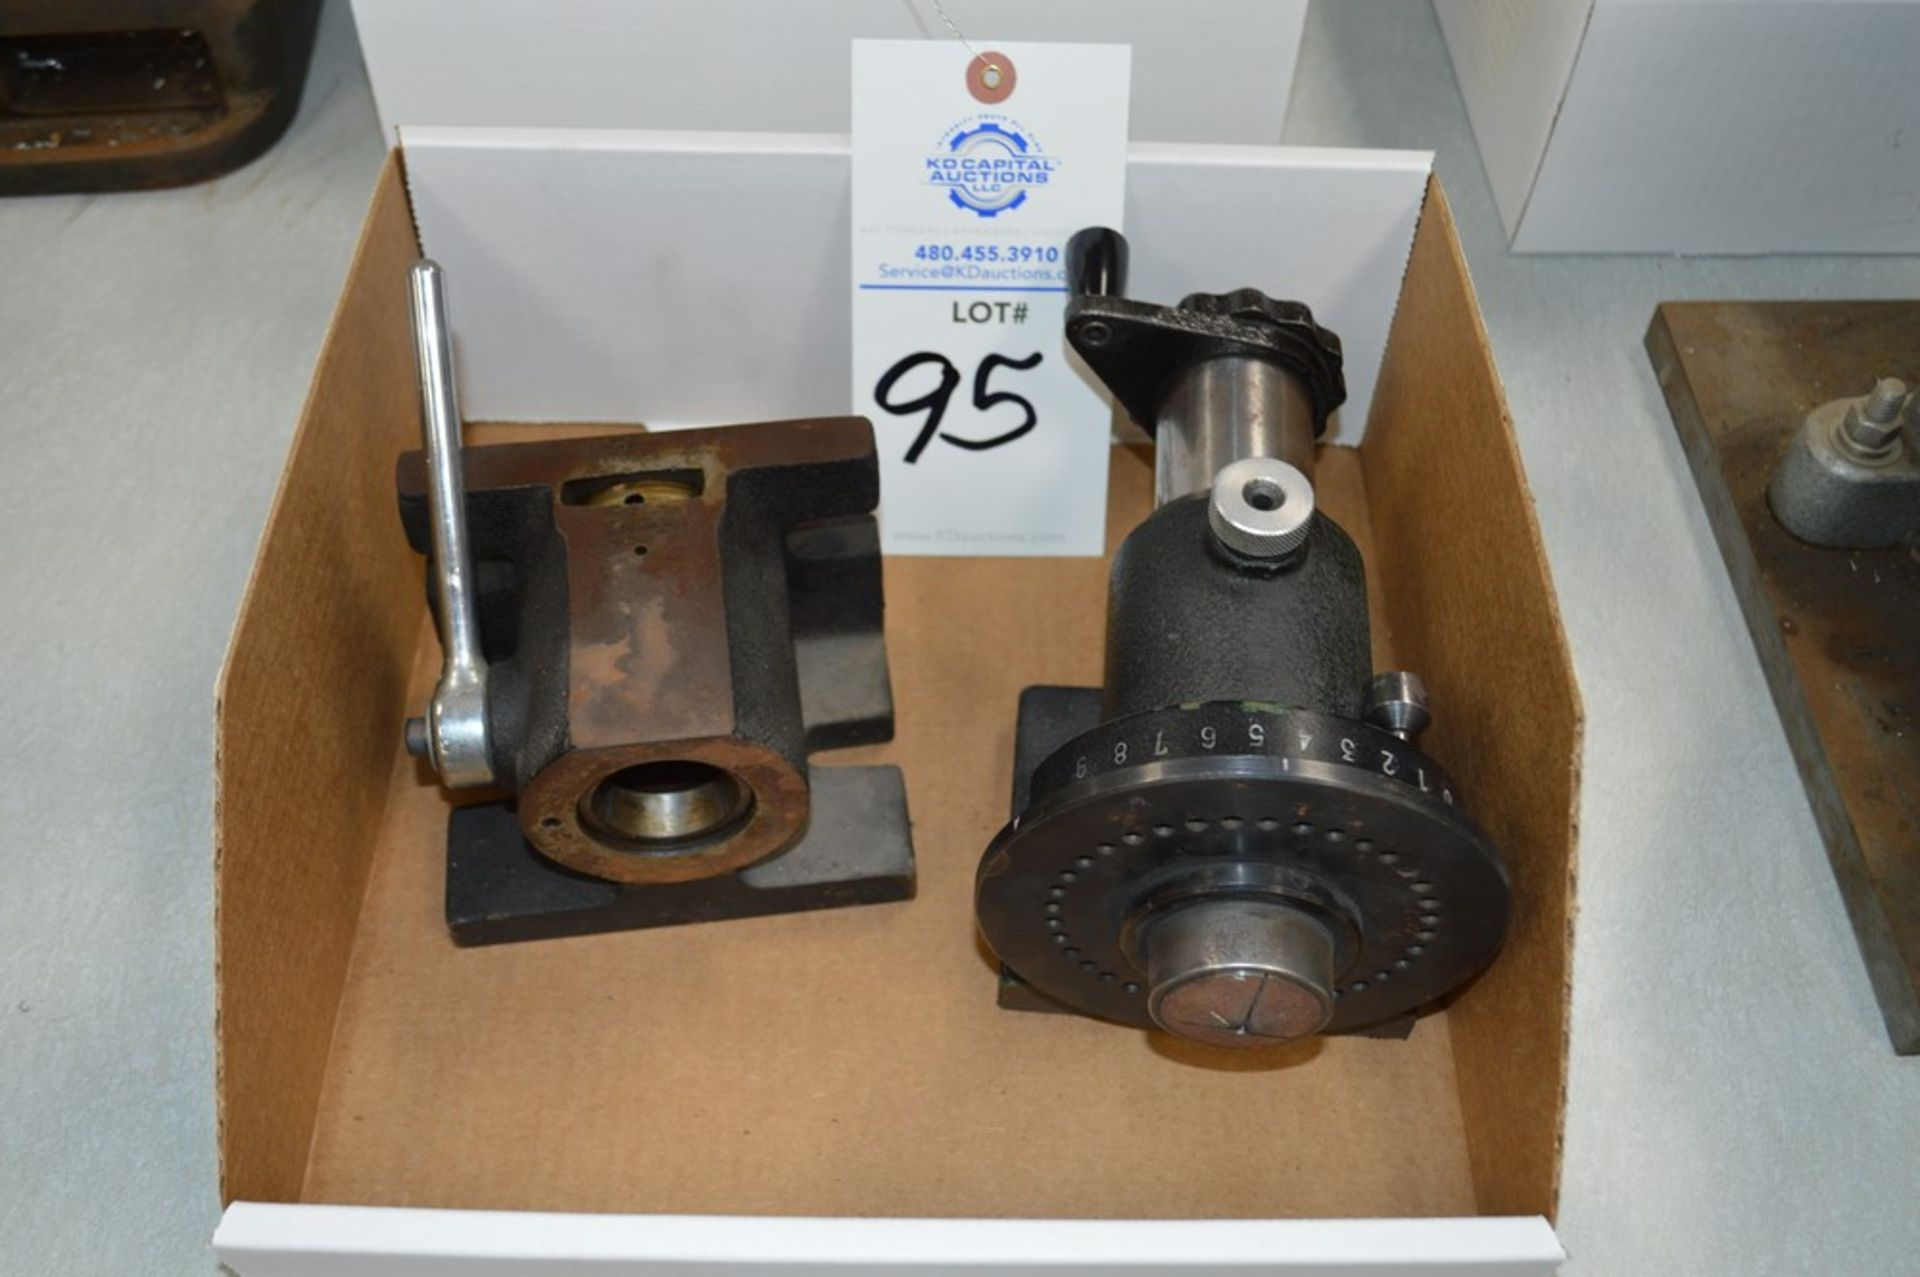 Drilling and Milling spin index holder attachments